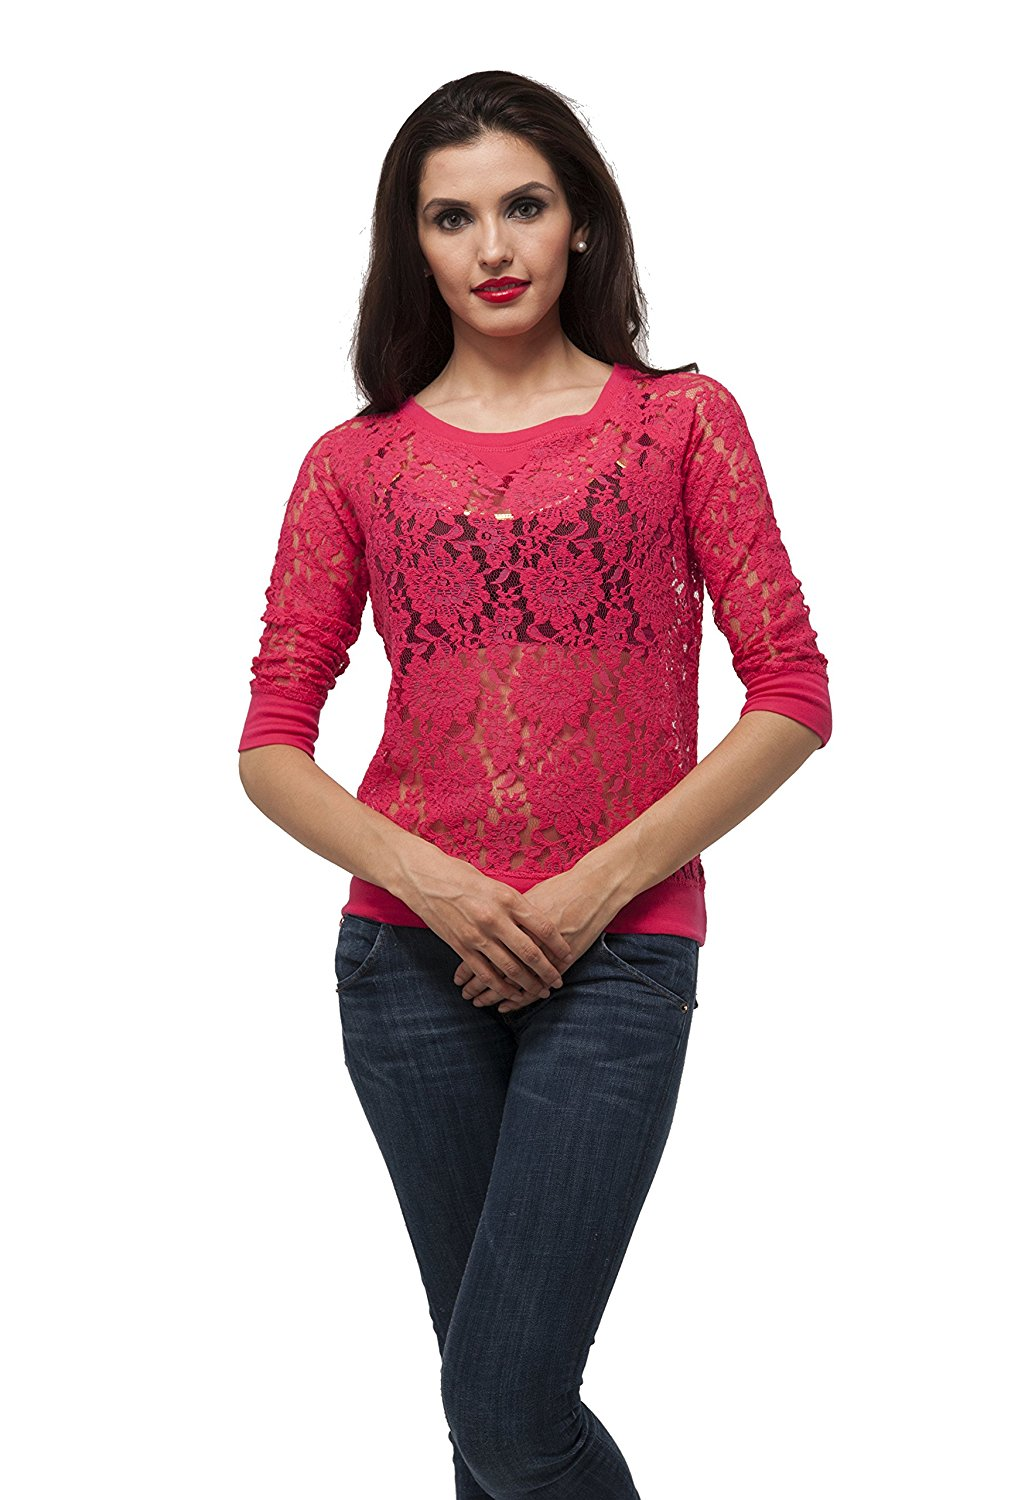 Half sleeve crochet laced top Sweater Shirt